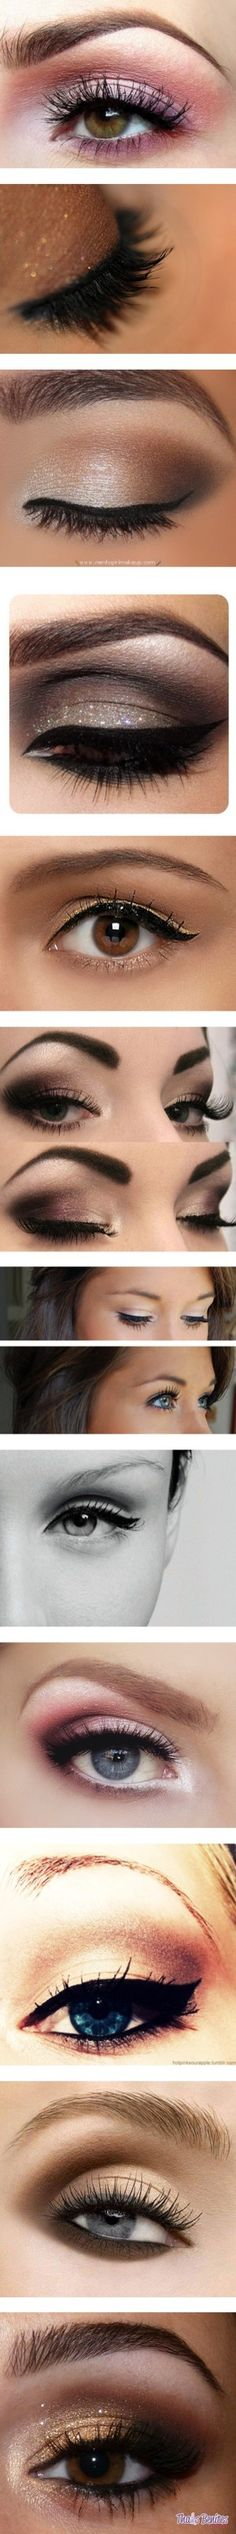 eye makeup :) @ The Beauty ThesisThe Beauty Thesis